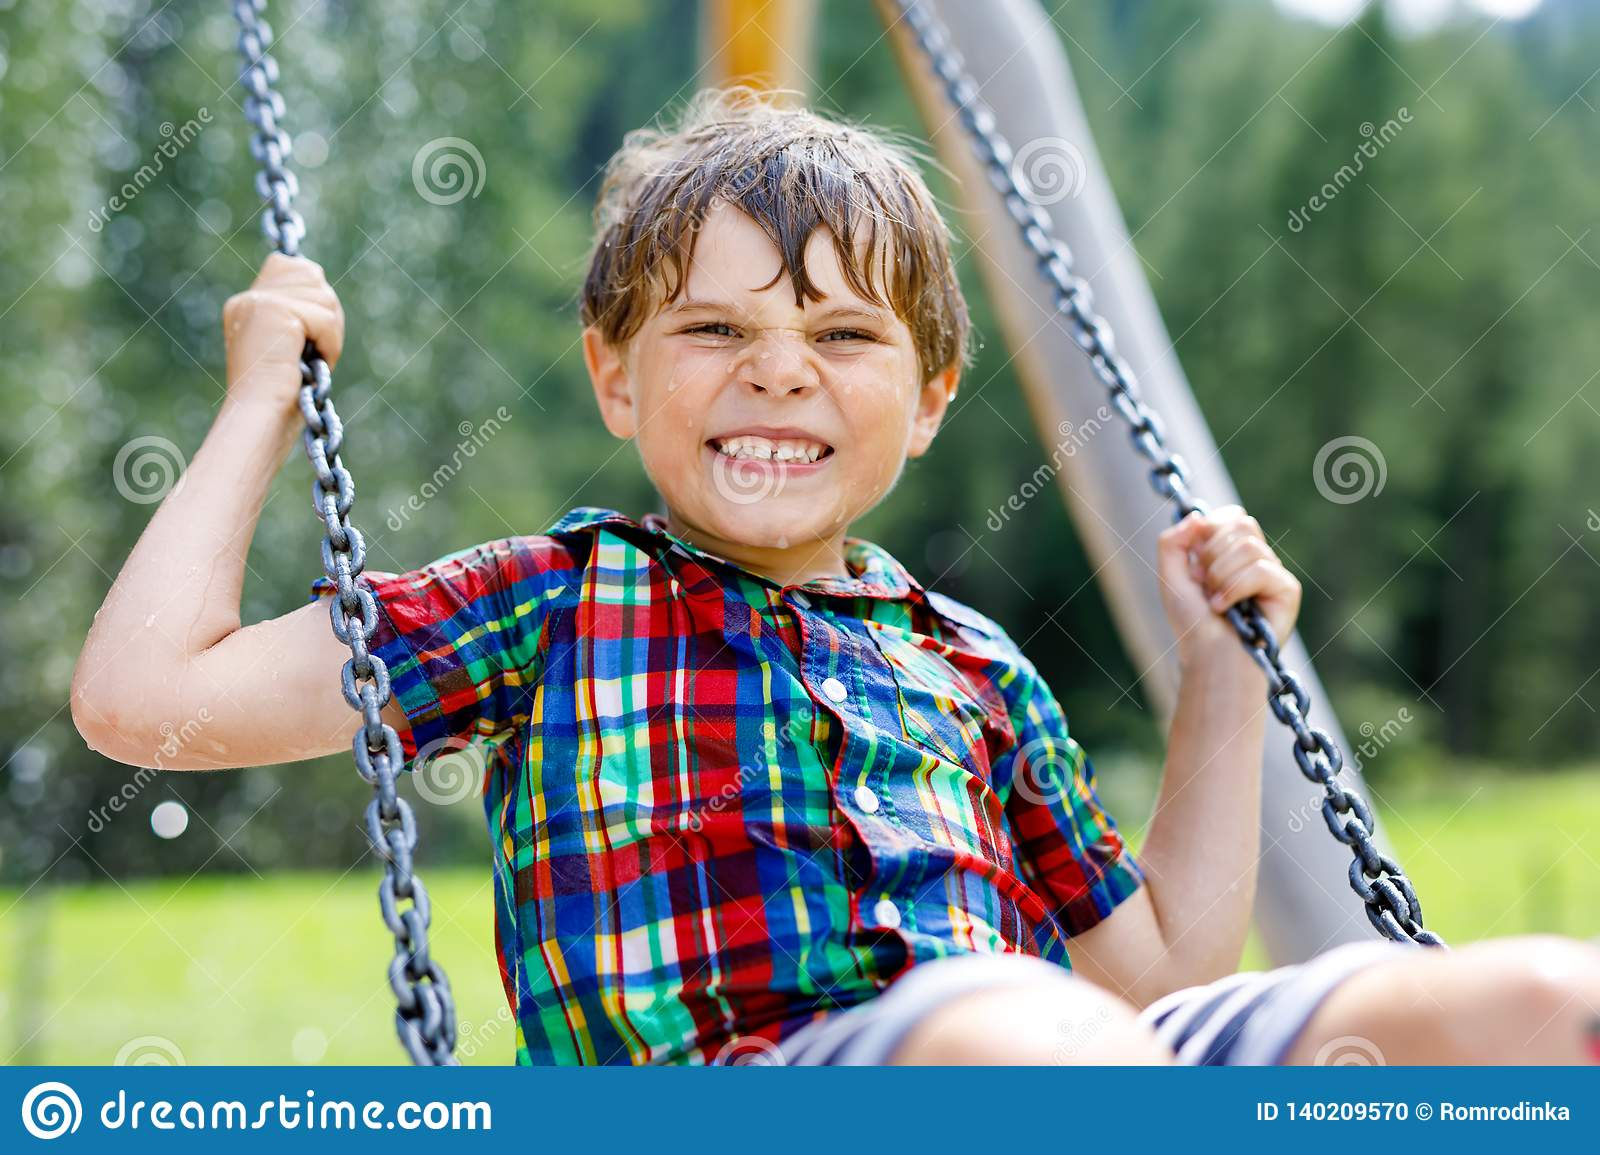 Funny kid boy having fun with chain swing on outdoor playground while being wet splashed with water. child swinging on